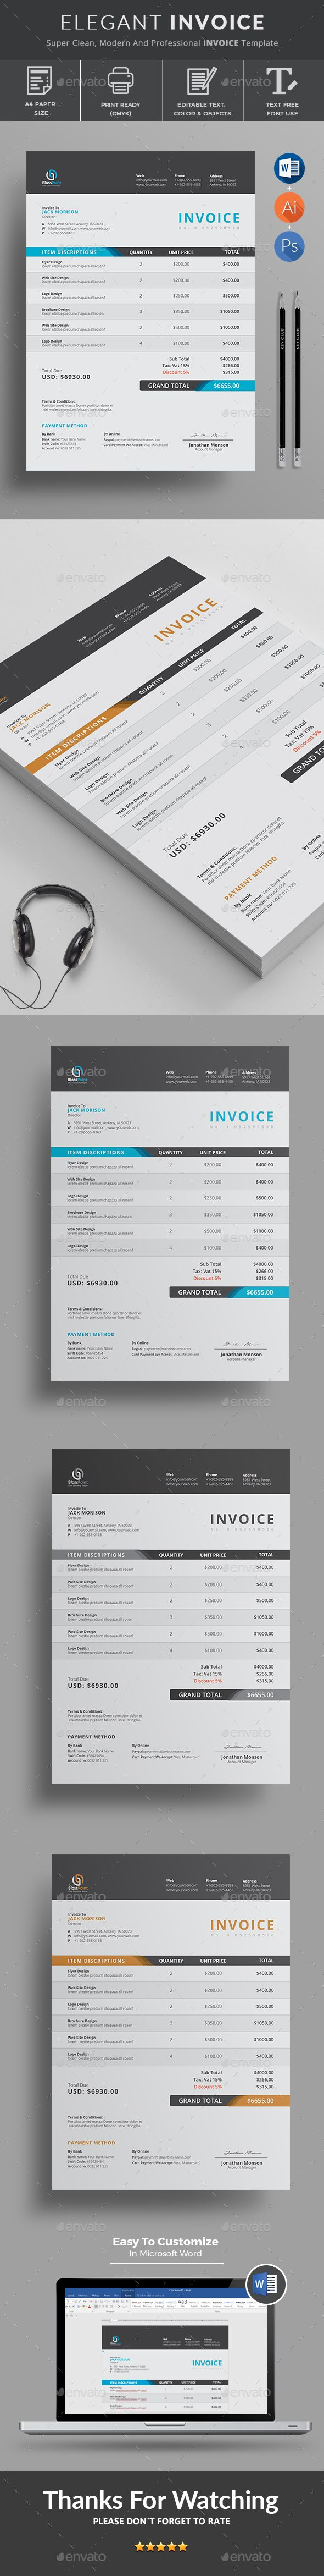 best 25+ invoice template ideas on pinterest | invoice layout, Invoice templates